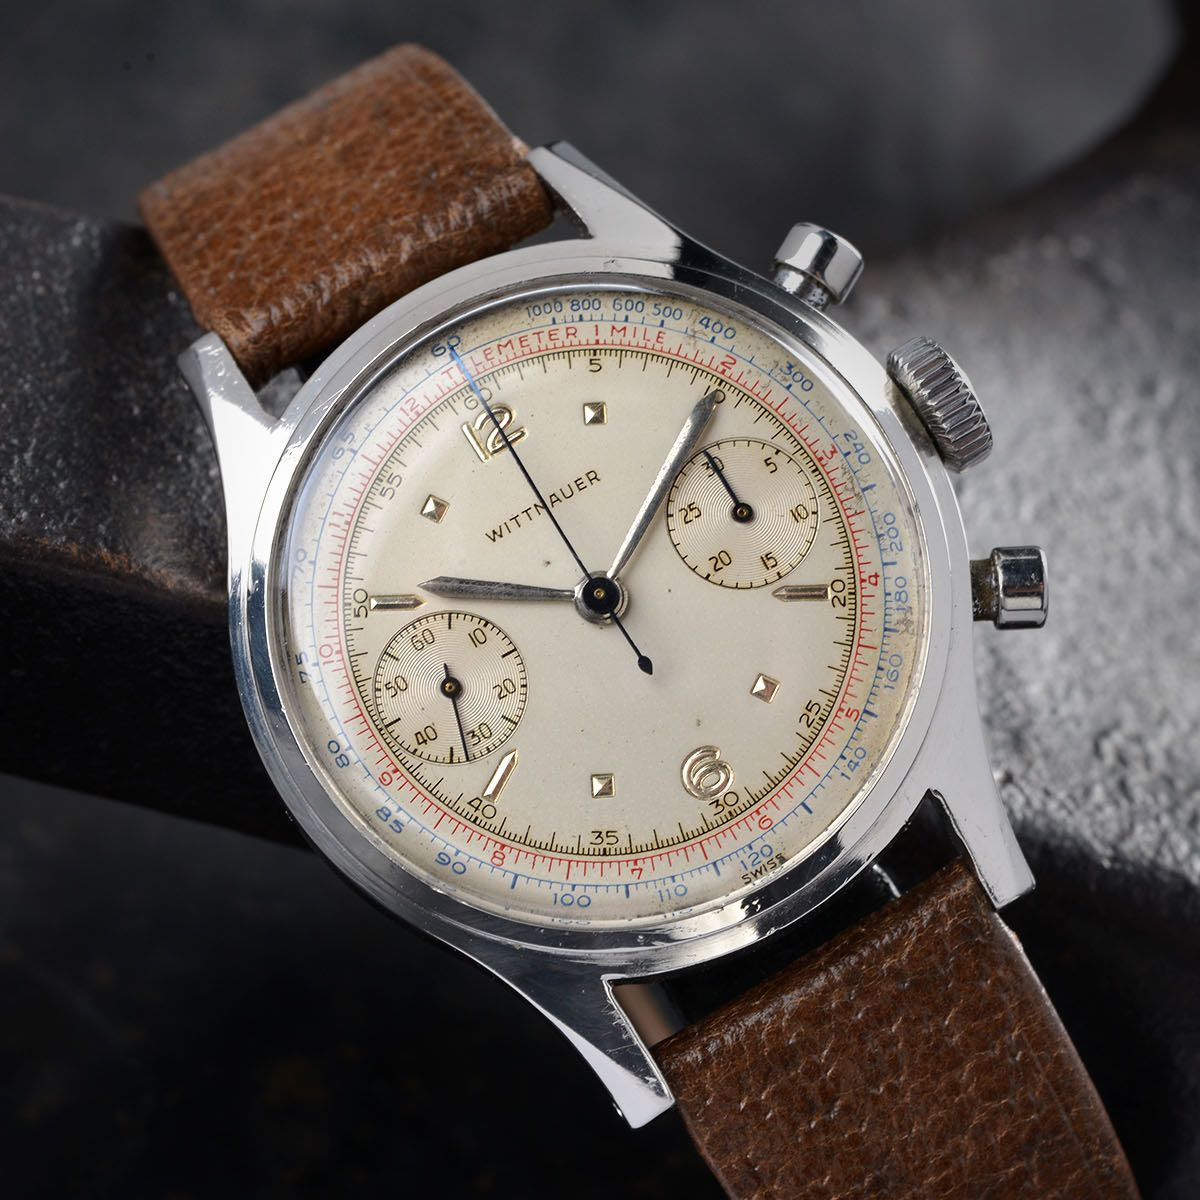 1950s Vintage Gallet Chronograph | Watches - Vintage